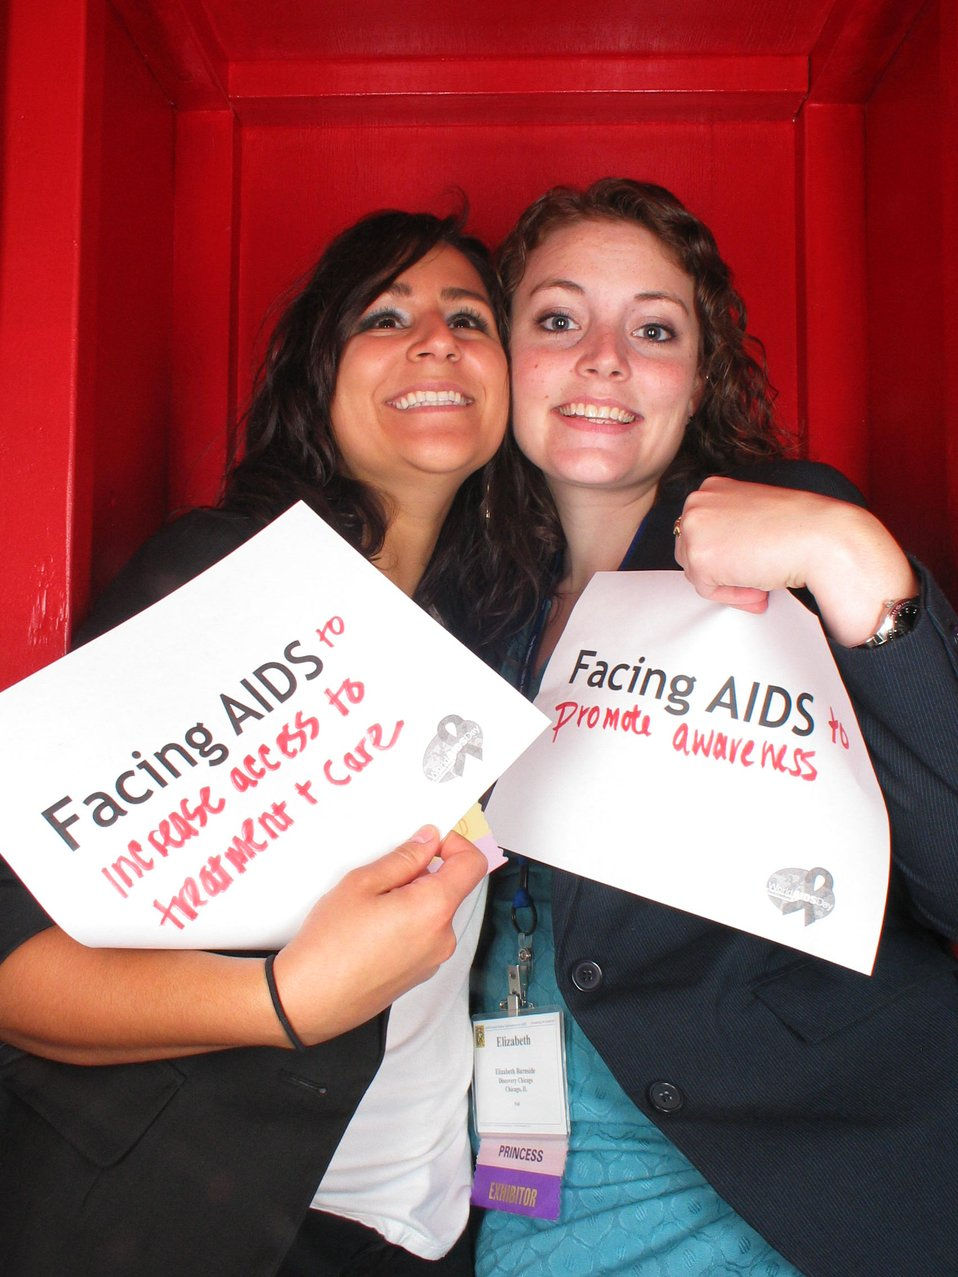 Facing AIDS to increase access to treatment and care. Facing AIDS to promote awareness